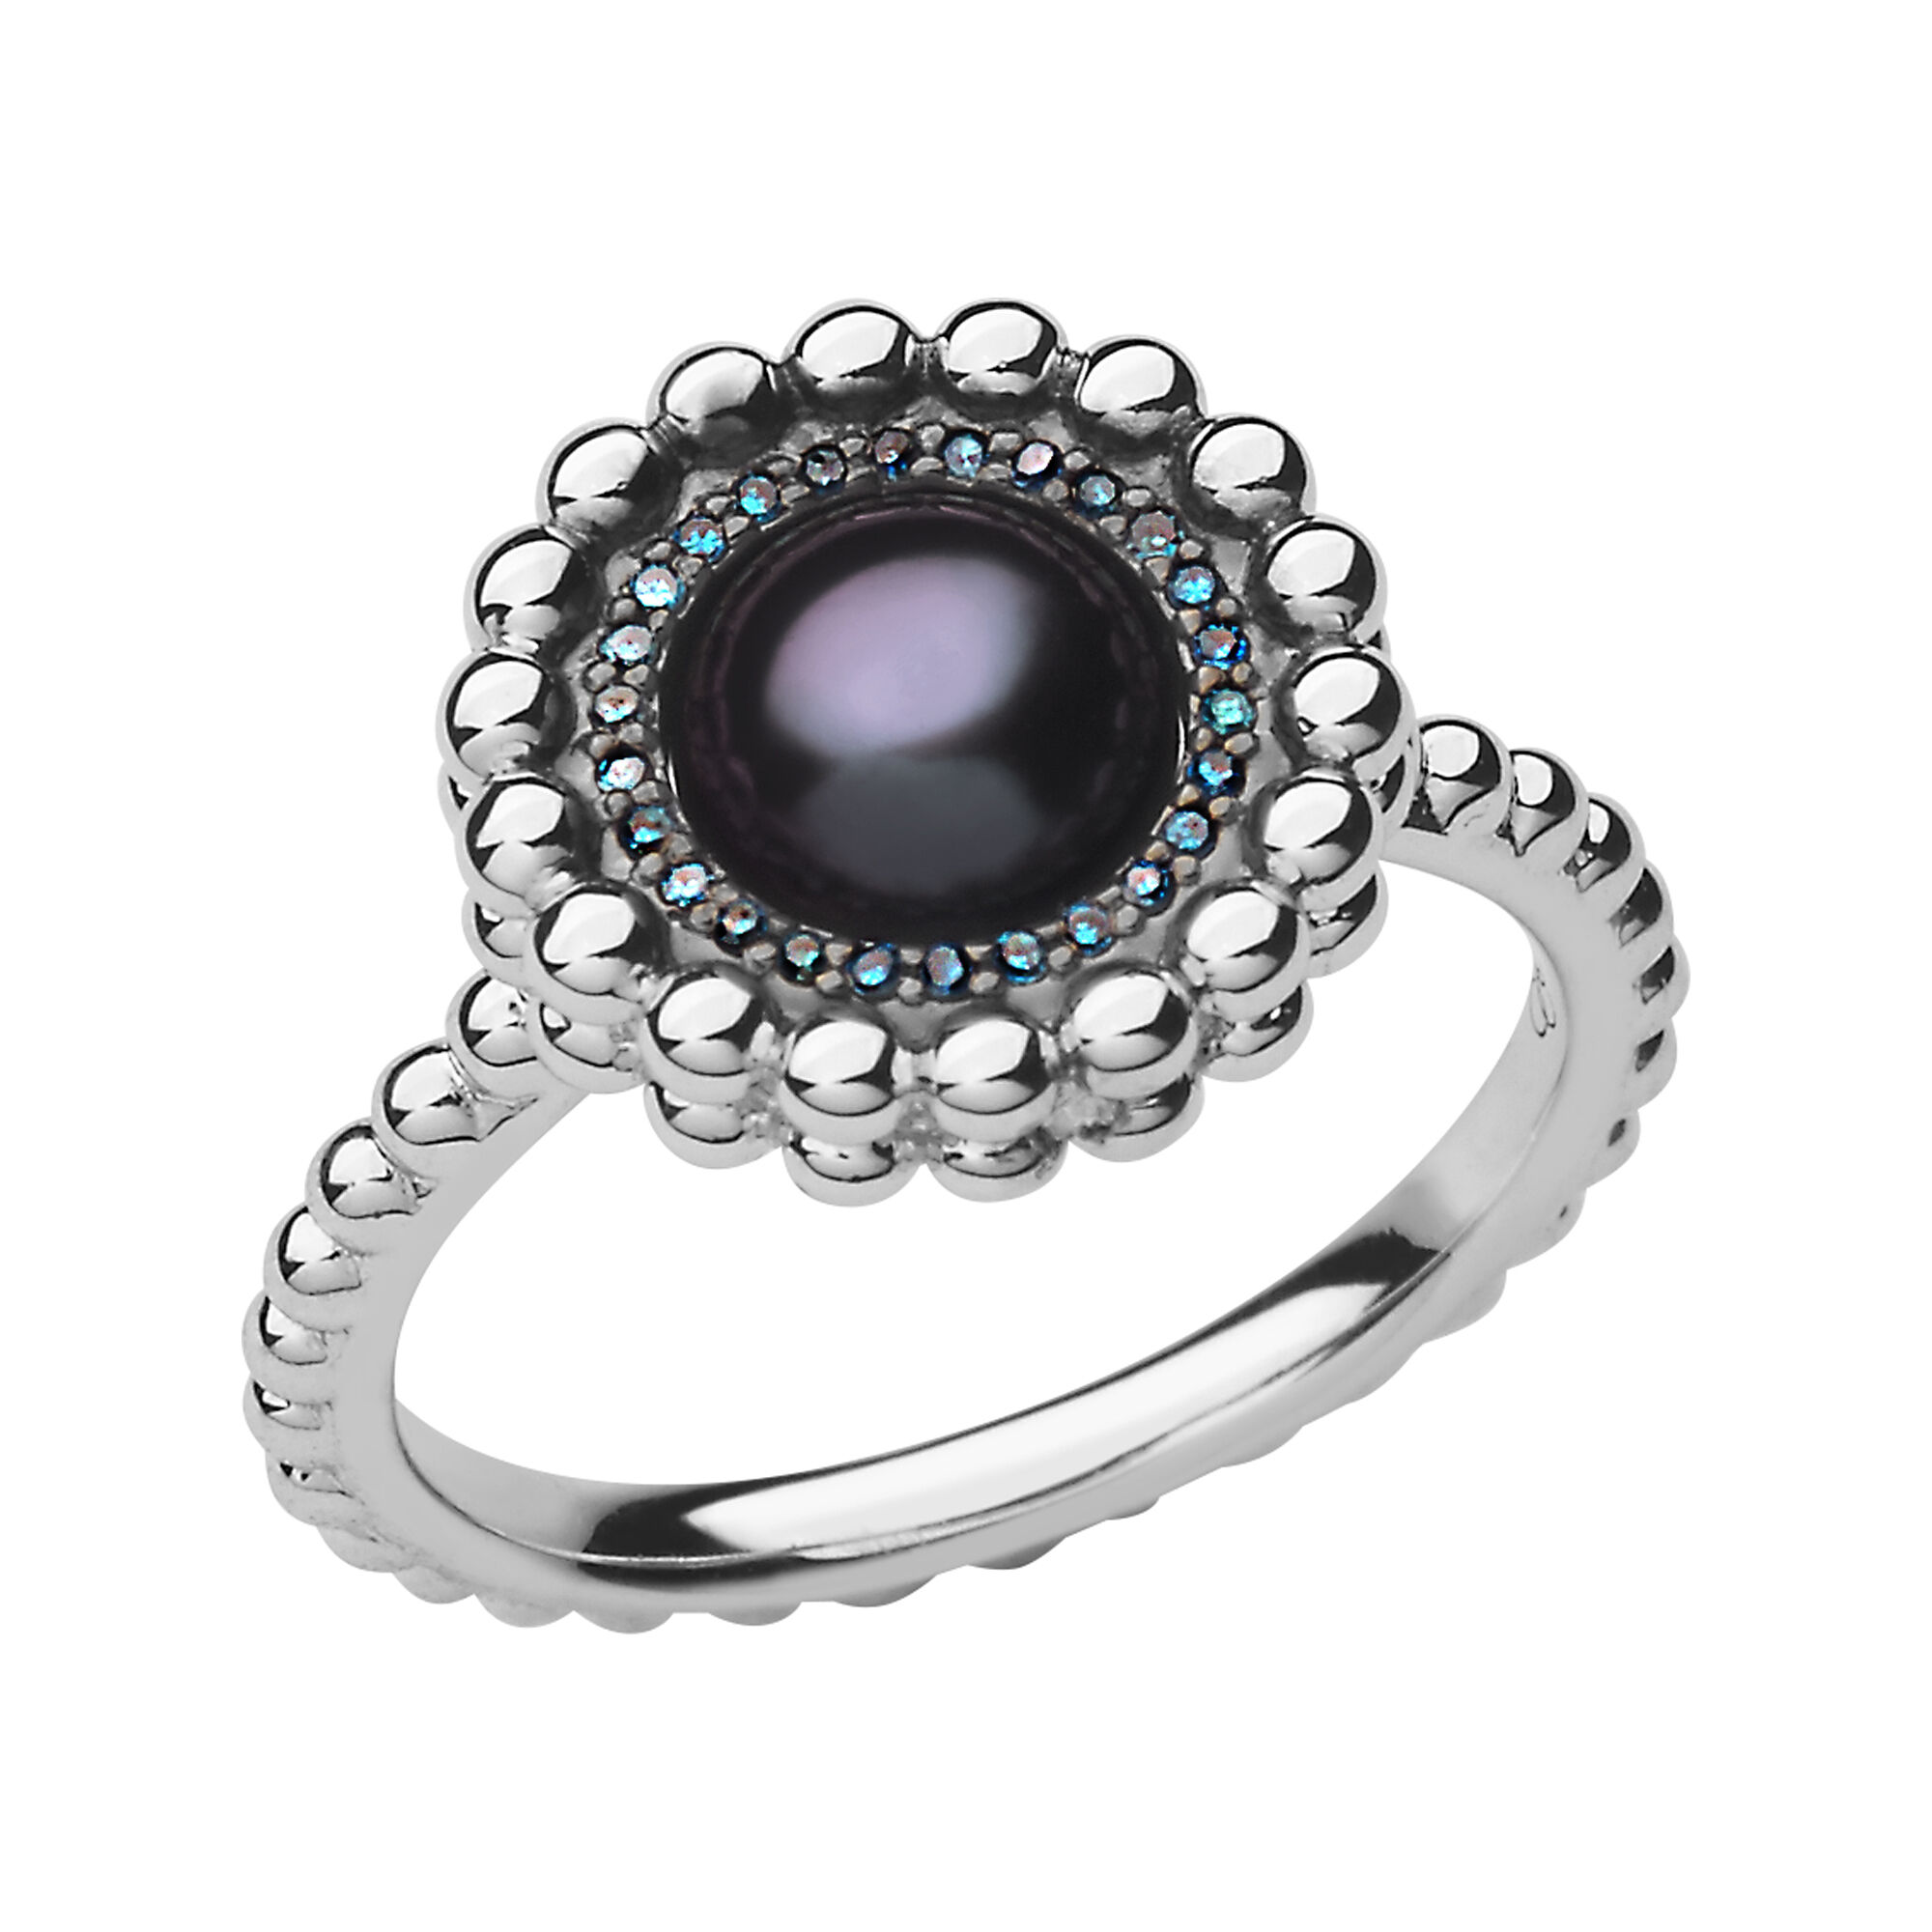 set rings unique majorica silver halo of gold sterling wedding square white mabe amp pearl ring engagement